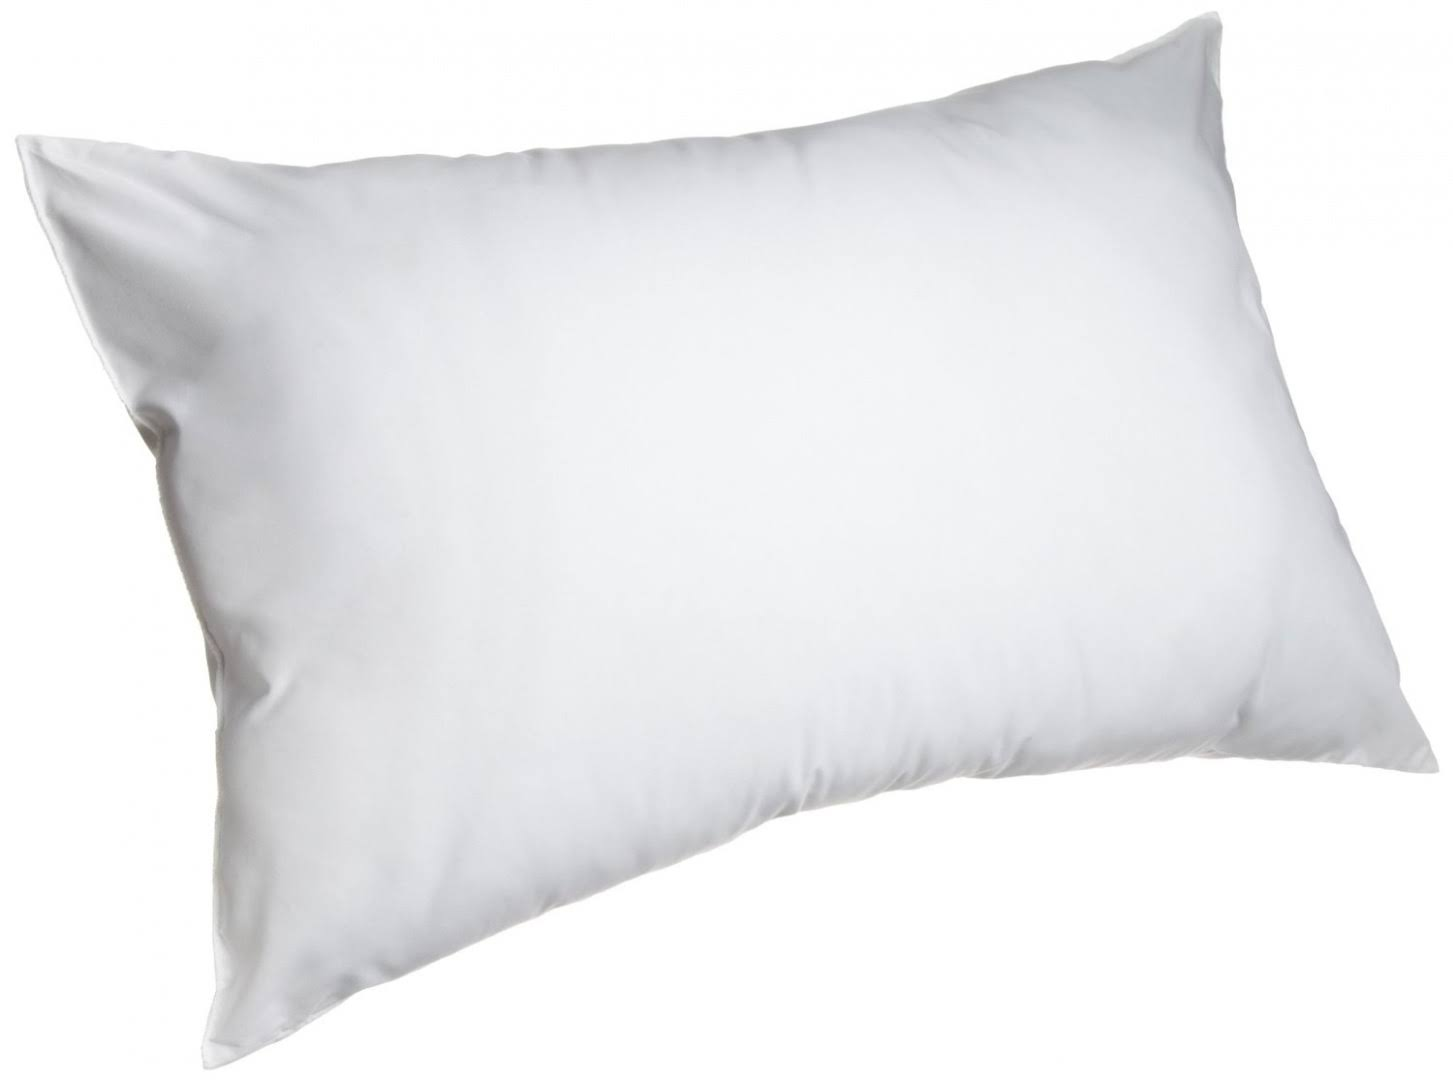 Adorable Peaceful Slumber Polyester Pillow with Velvety Touch Cover, Standard